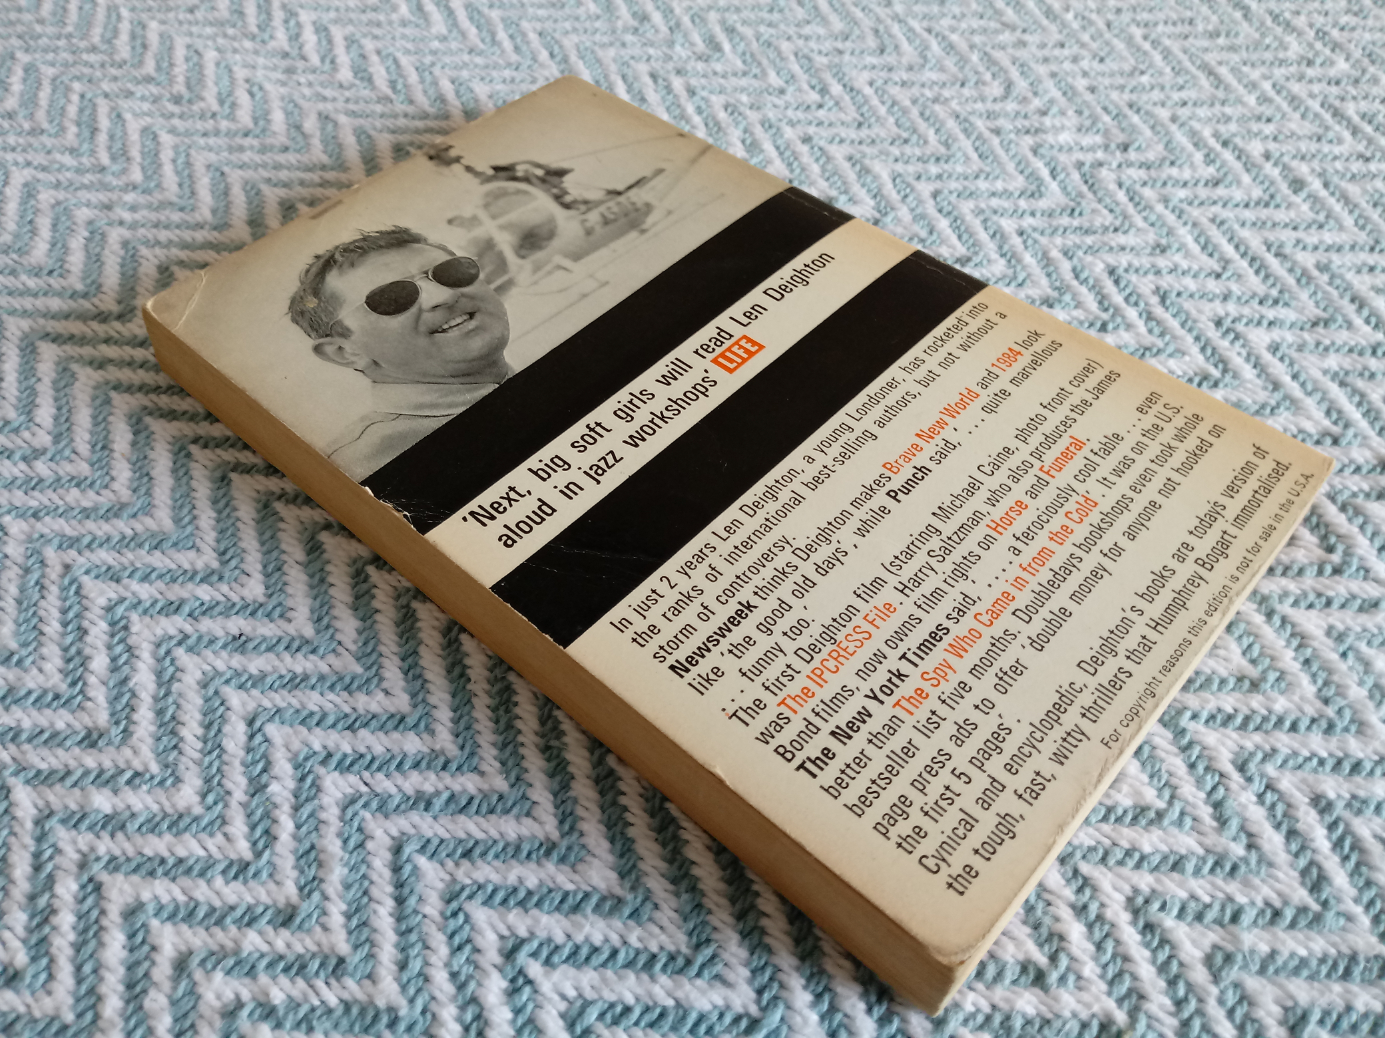 4 x Len Deighton softback books 1-Funeral in Berlin 256 pages publish Penguin books 1966 in good - Image 2 of 4